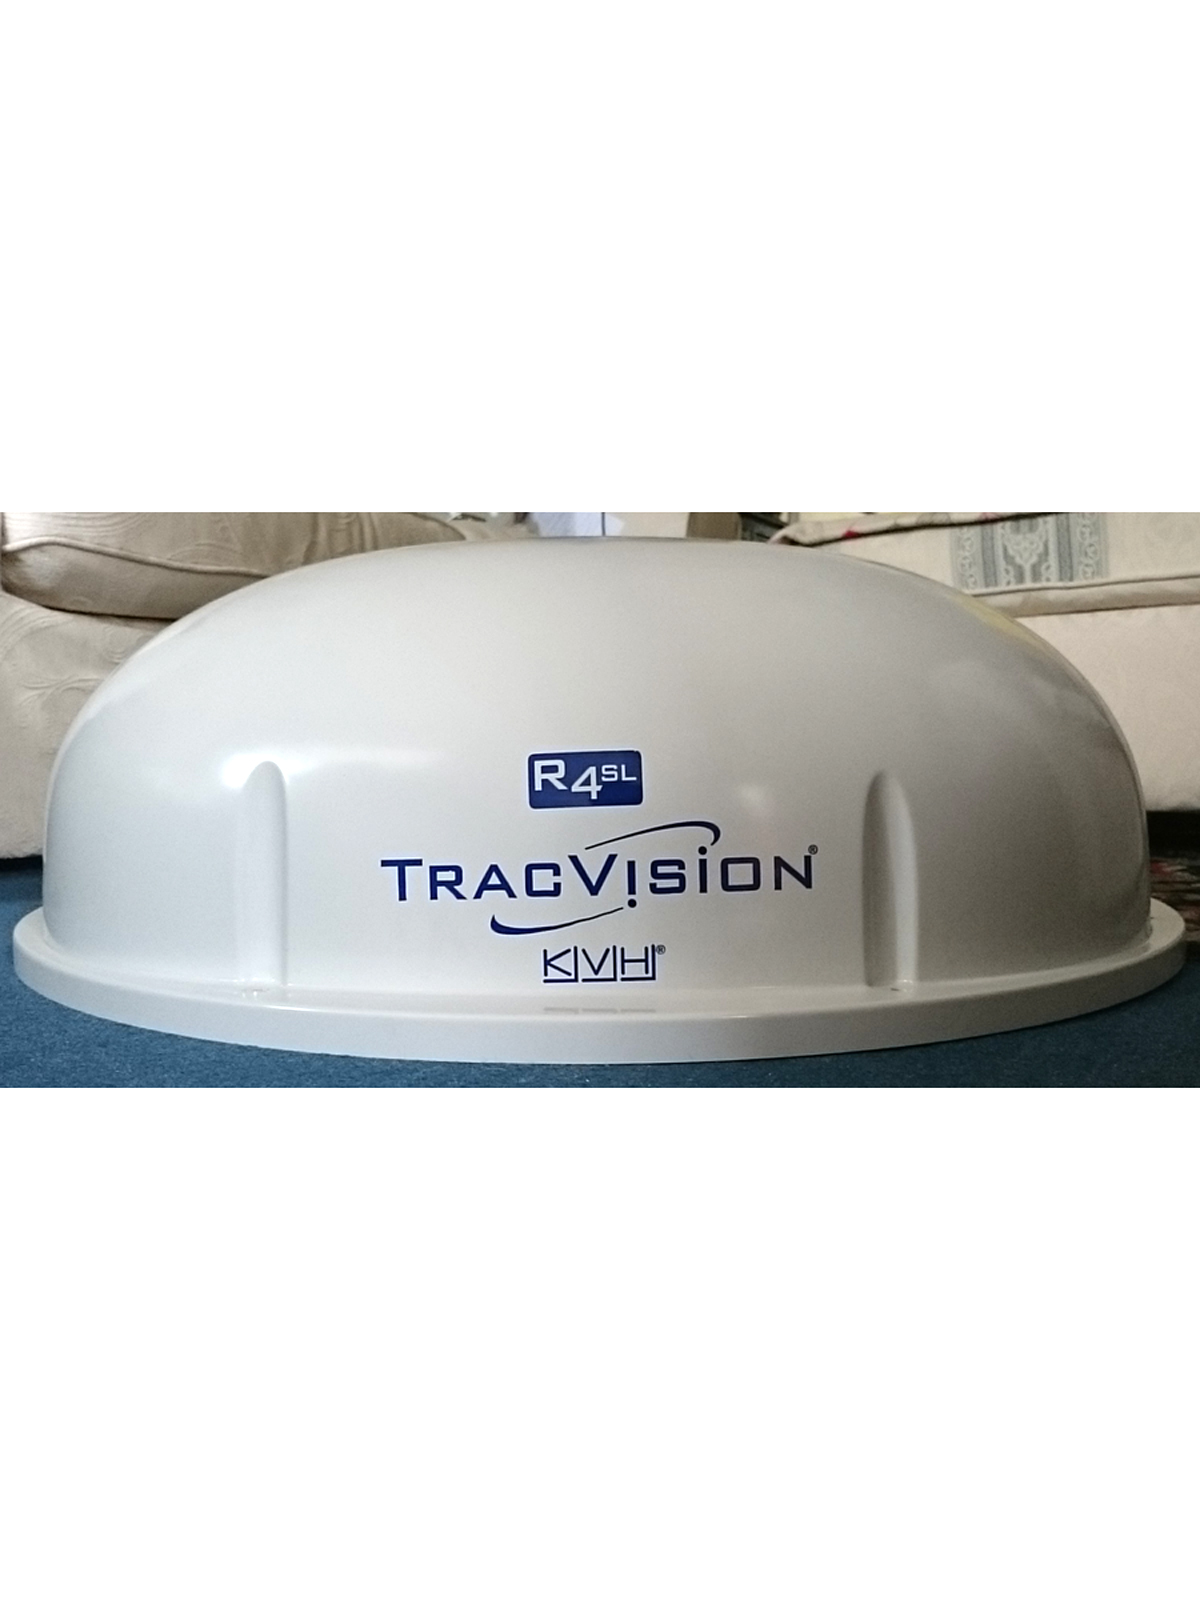 Kvh Tracvision R4sl R5sl Replacement Lid Dome Aerotrac